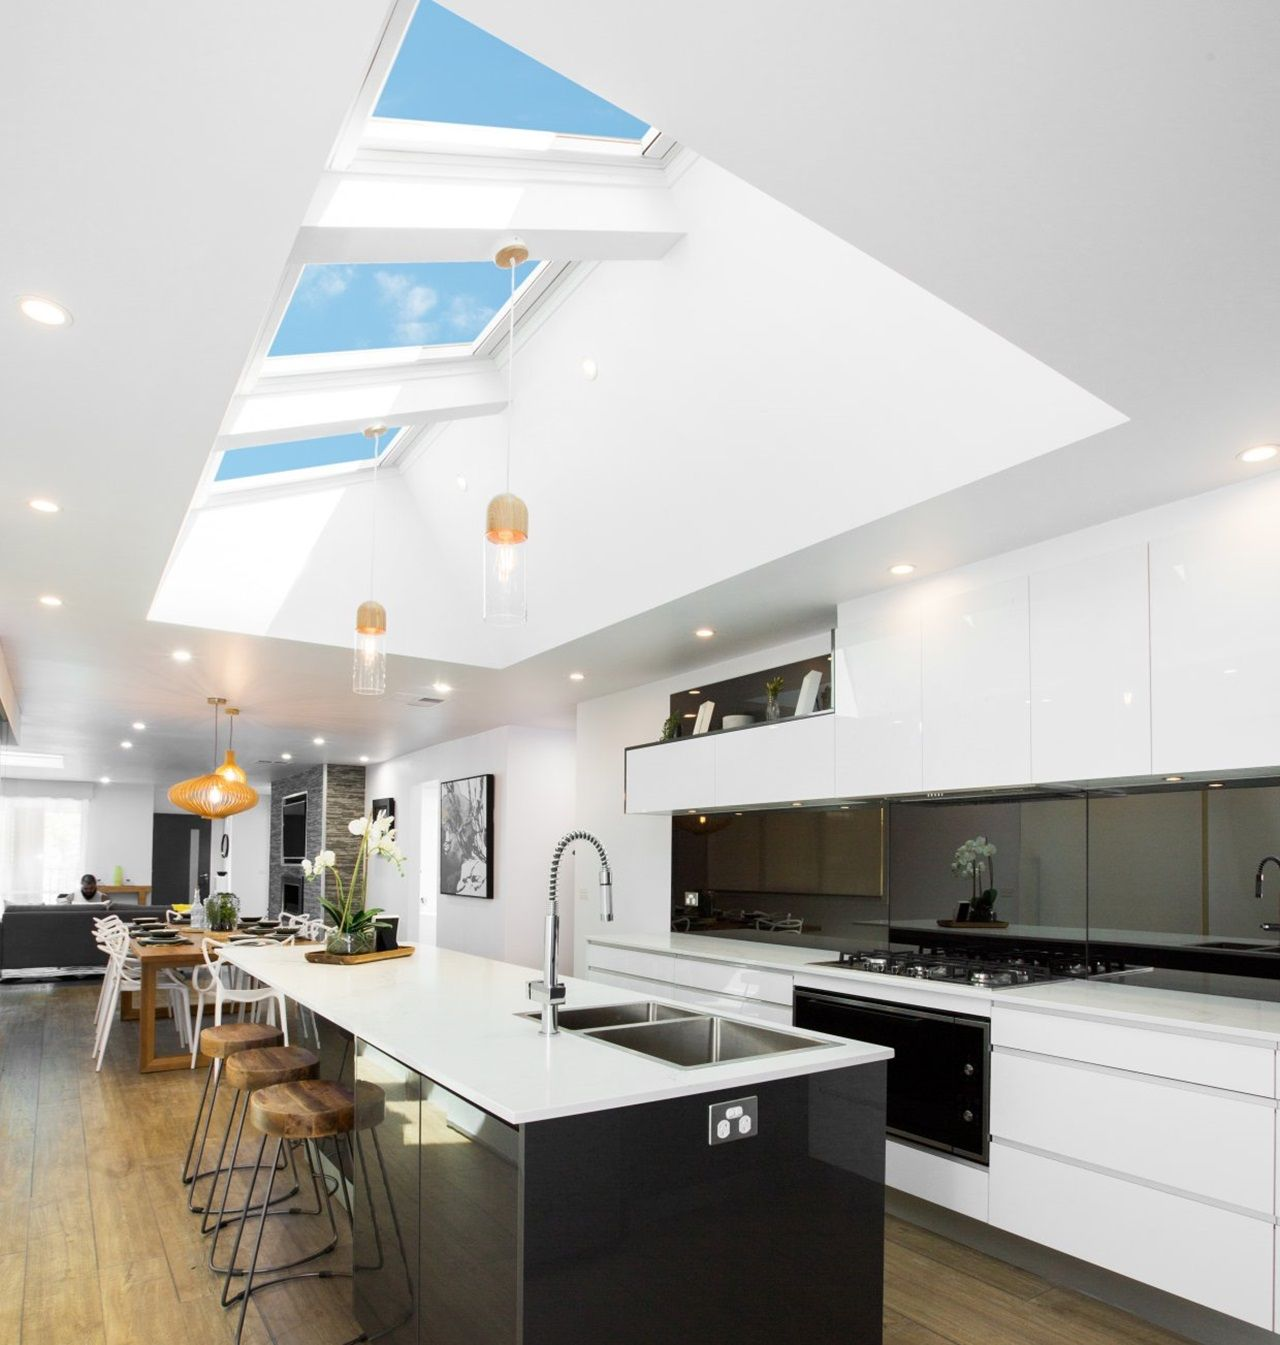 of images sky cases gallery en velux kitchen inspiration lights lighting